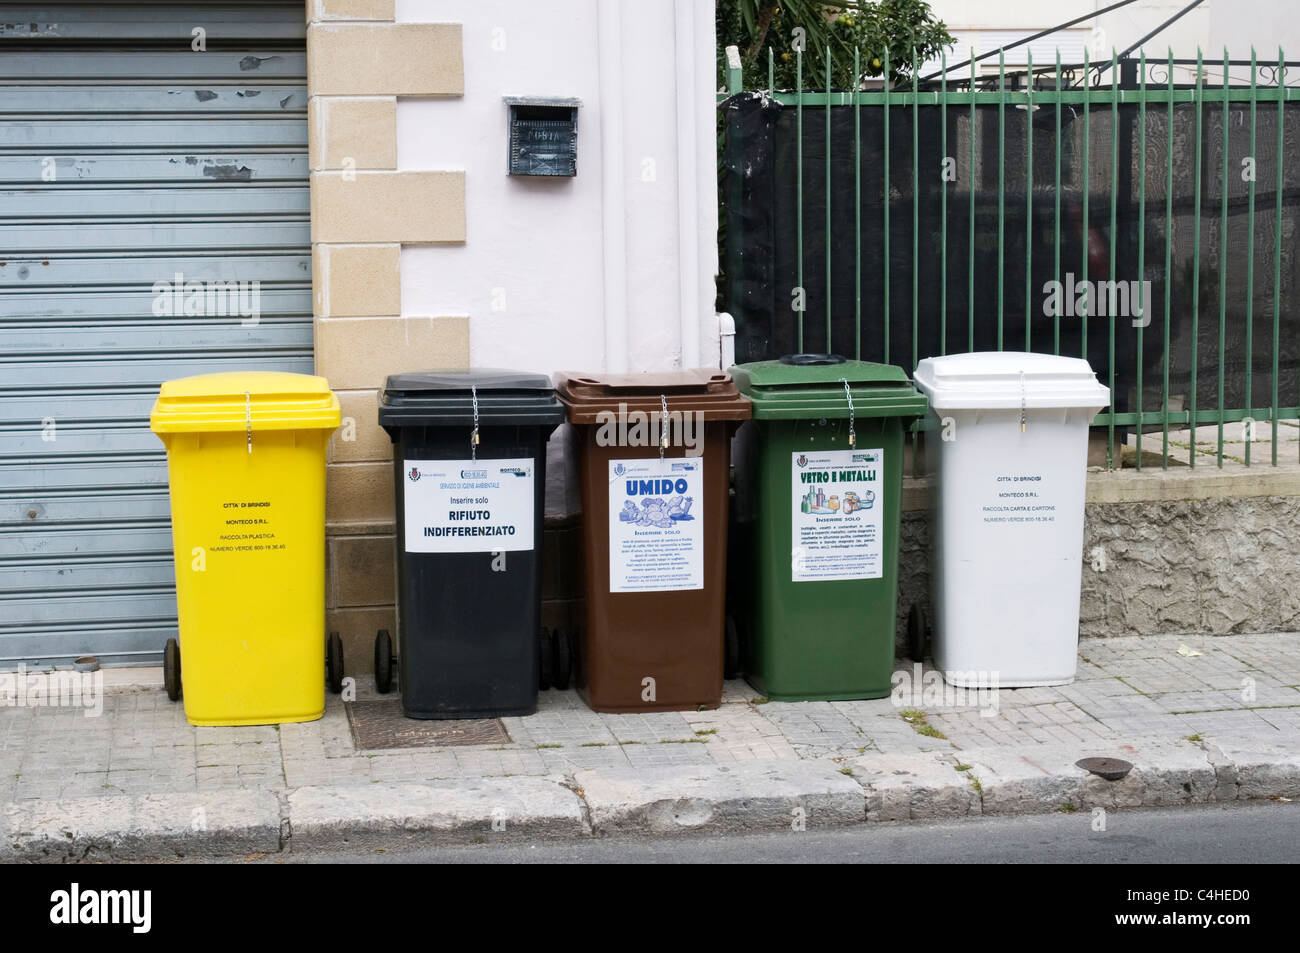 recycling recycle bin bins trash can cans sorted separated waste separate sort sorted rubbish - Stock Image